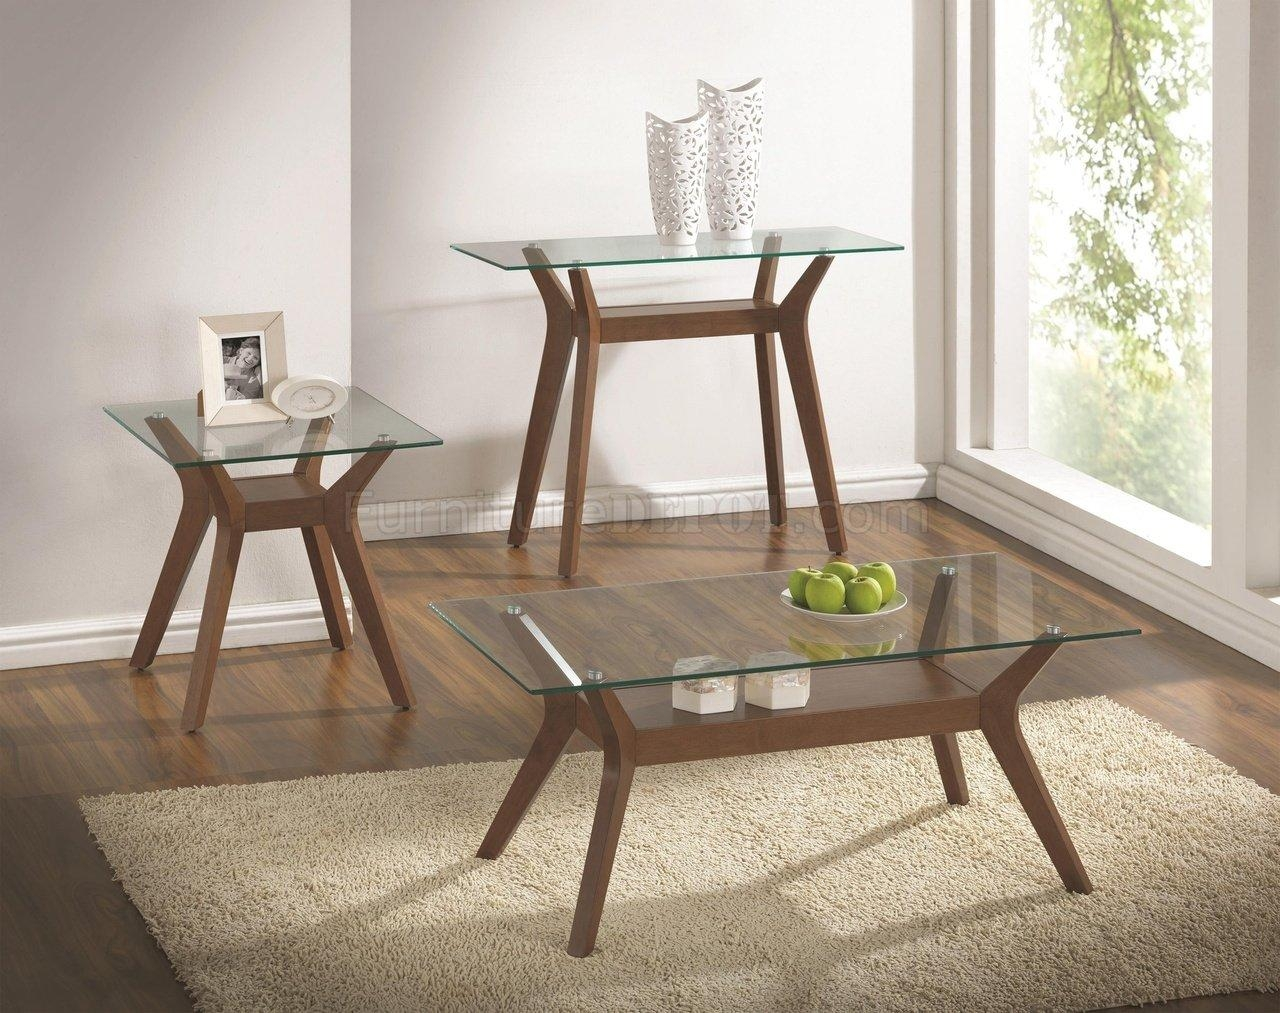 704168 3Pc Coffee Table Setcoaster W/optional Sofa Table intended for Sofa Table With Chairs